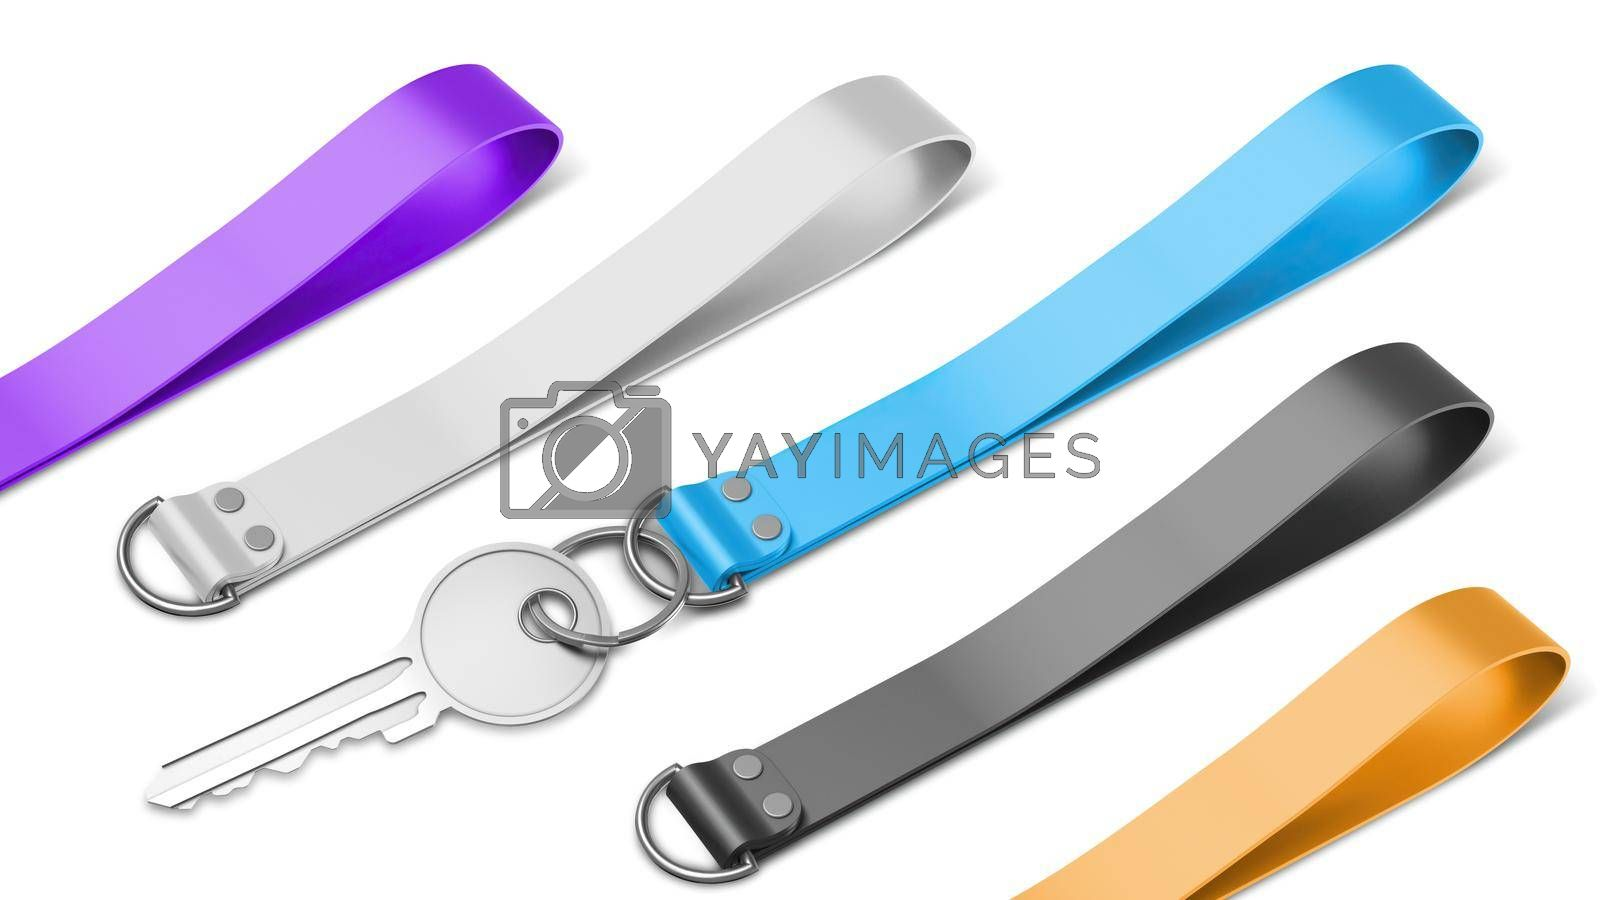 Silicone Keychain Mockup Composition View